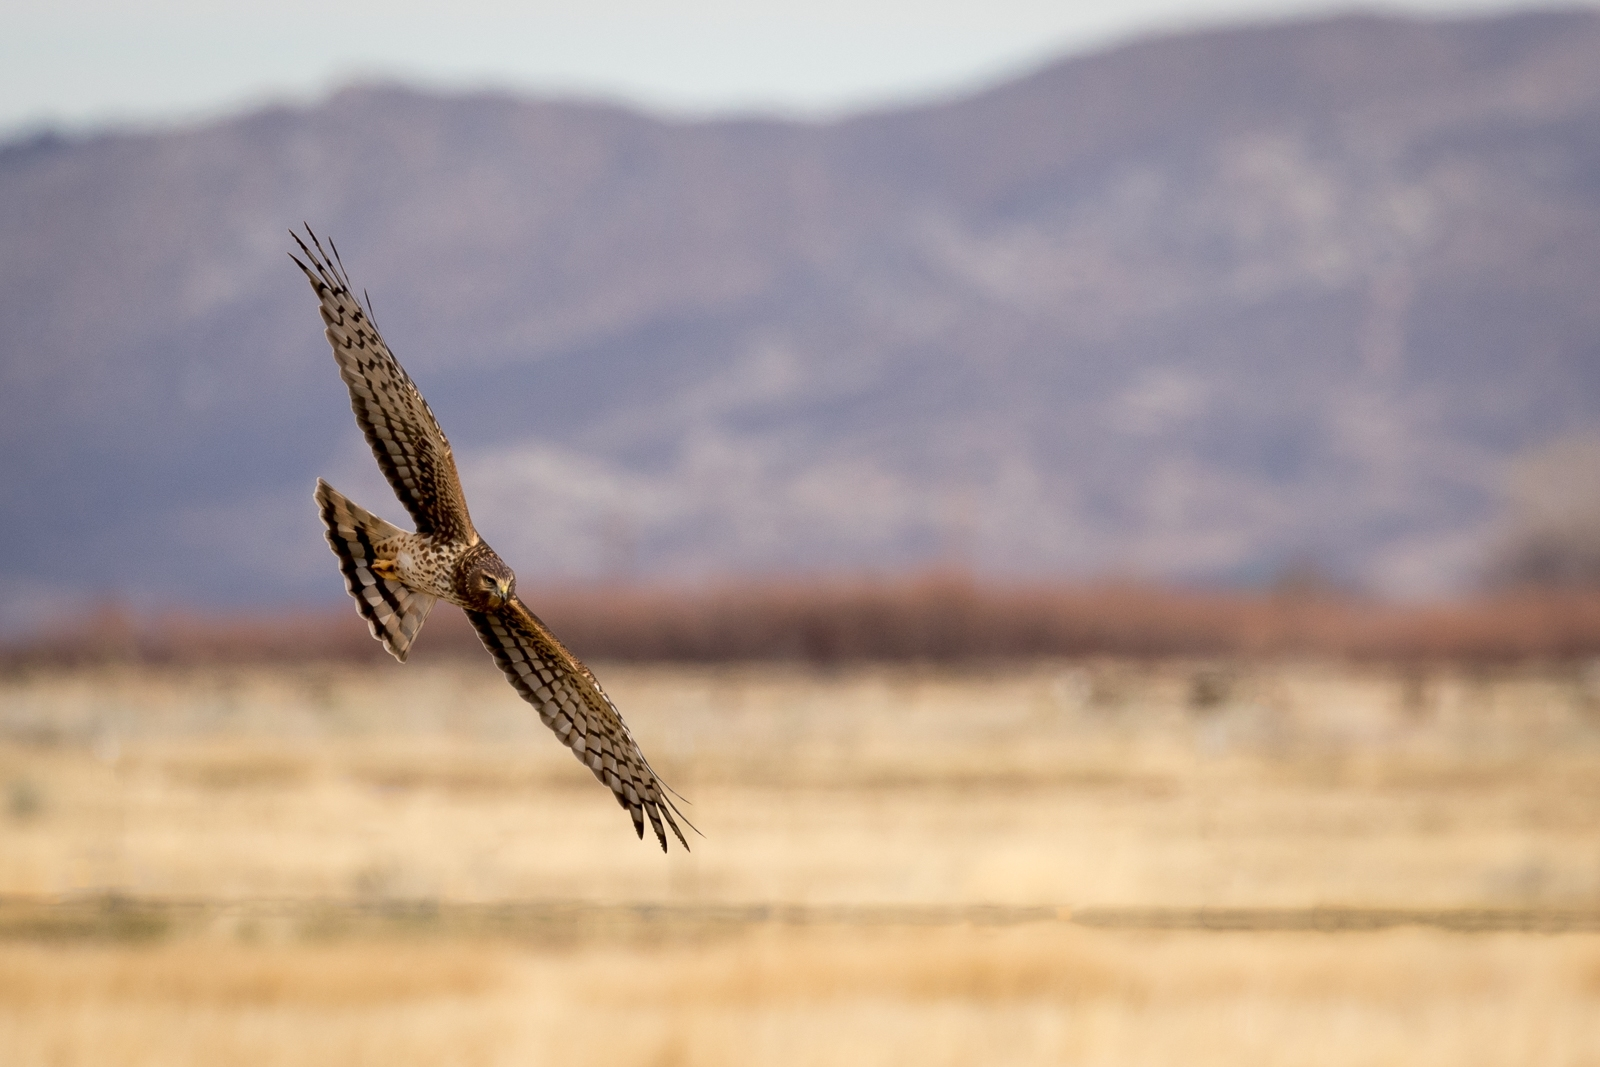 'Female Northern Harrier Courses low over open field in search of food.' (NI 1 Place) by Bill Lapworth - PE